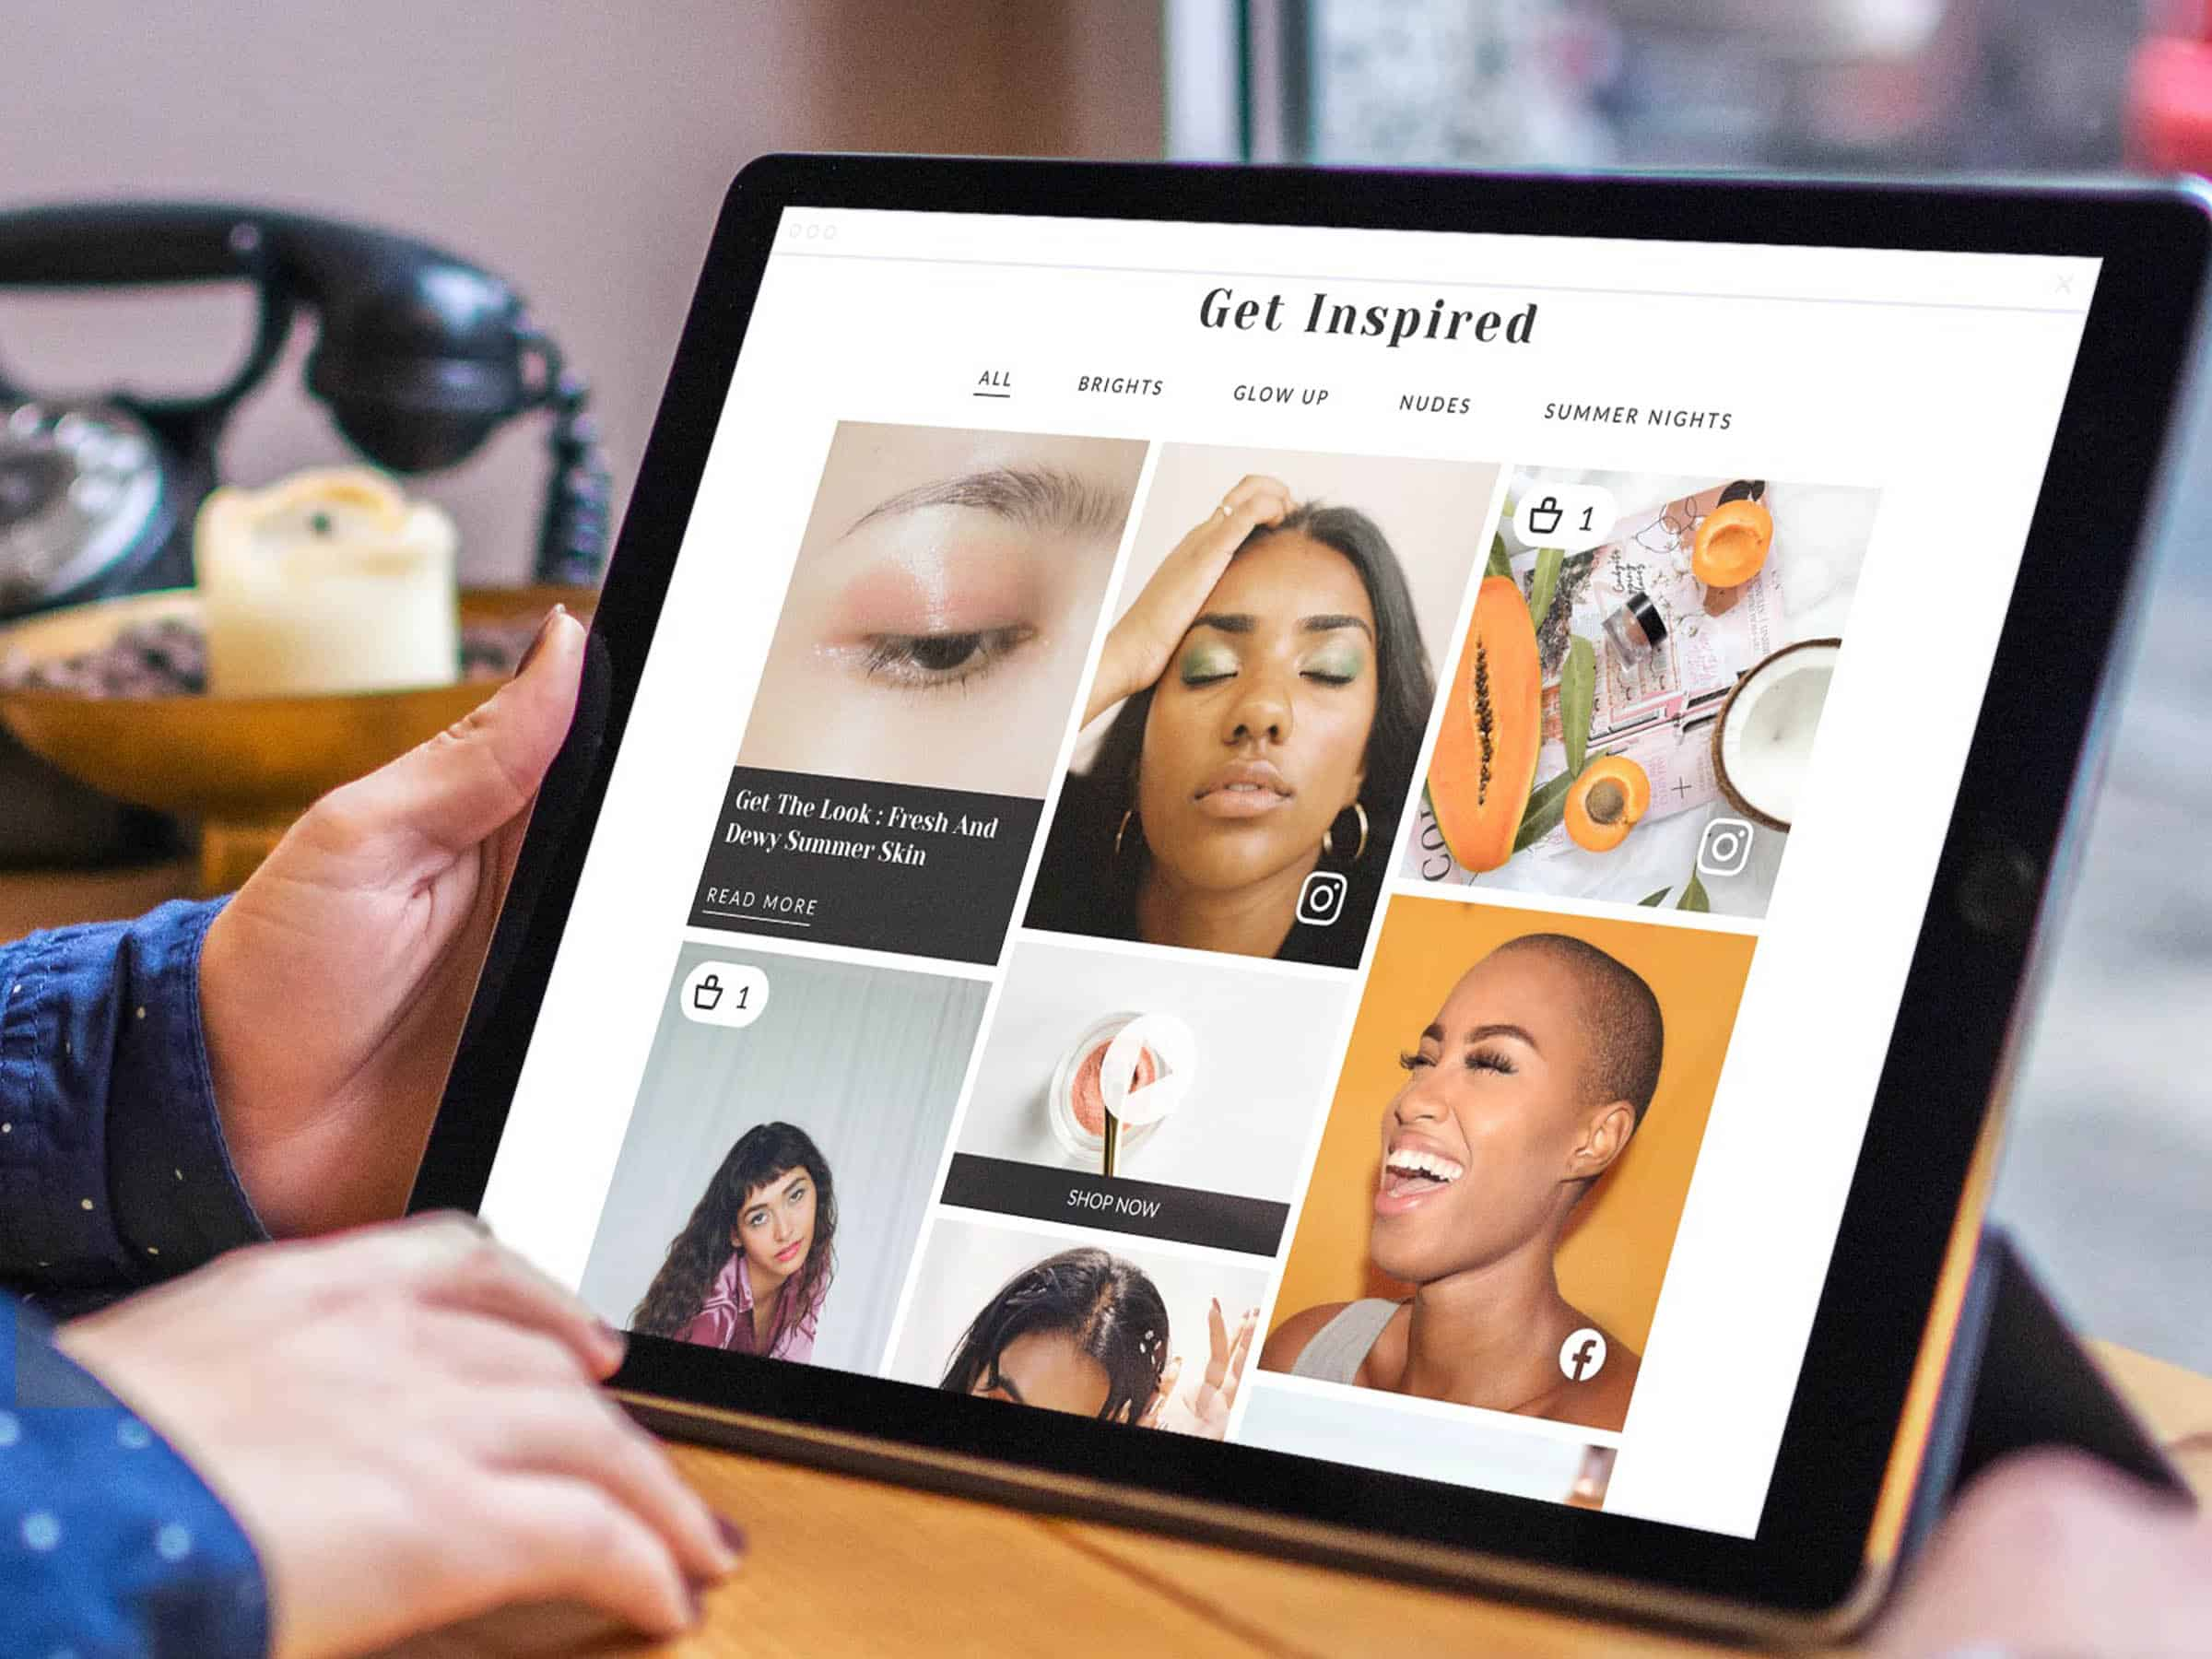 Inspire with dynamic content experiences